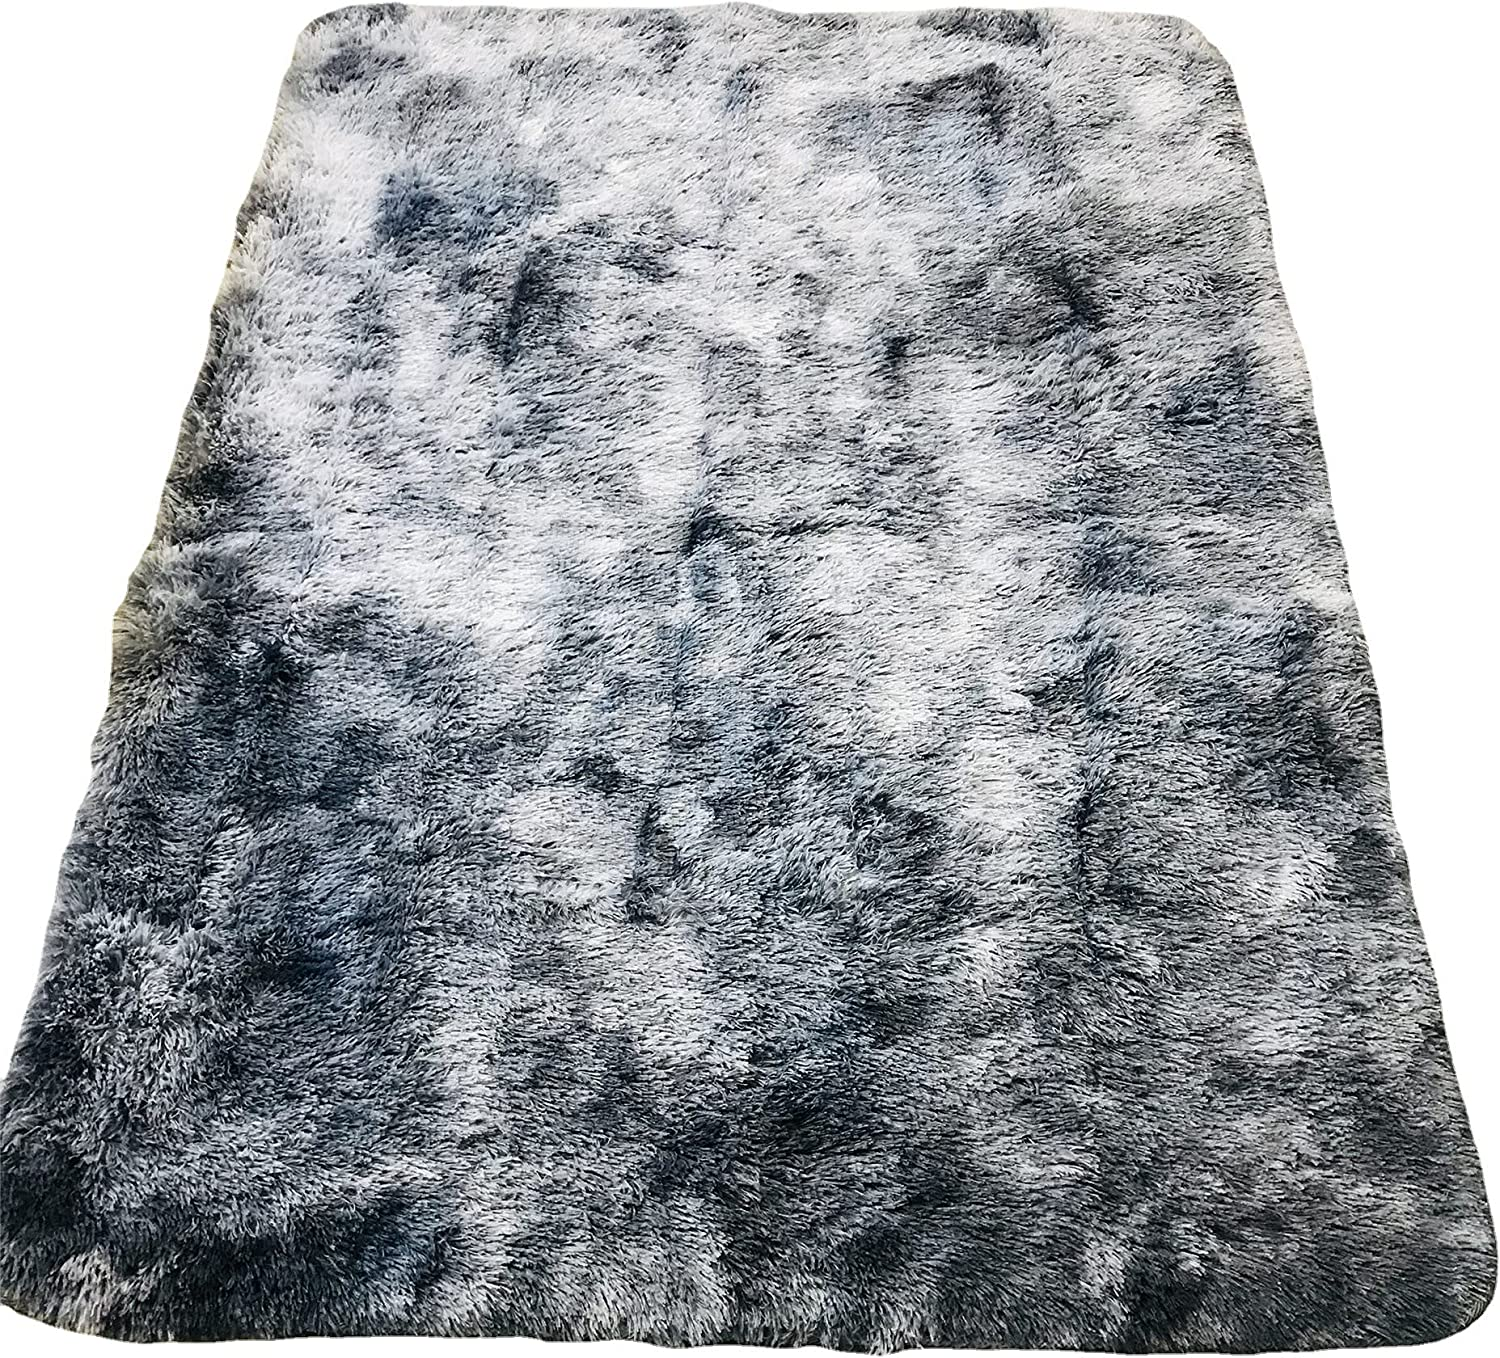 GUBOWIN Tie-Gray All items in Bombing free shipping the store Area Rug Cheap Bedroom Living Room for